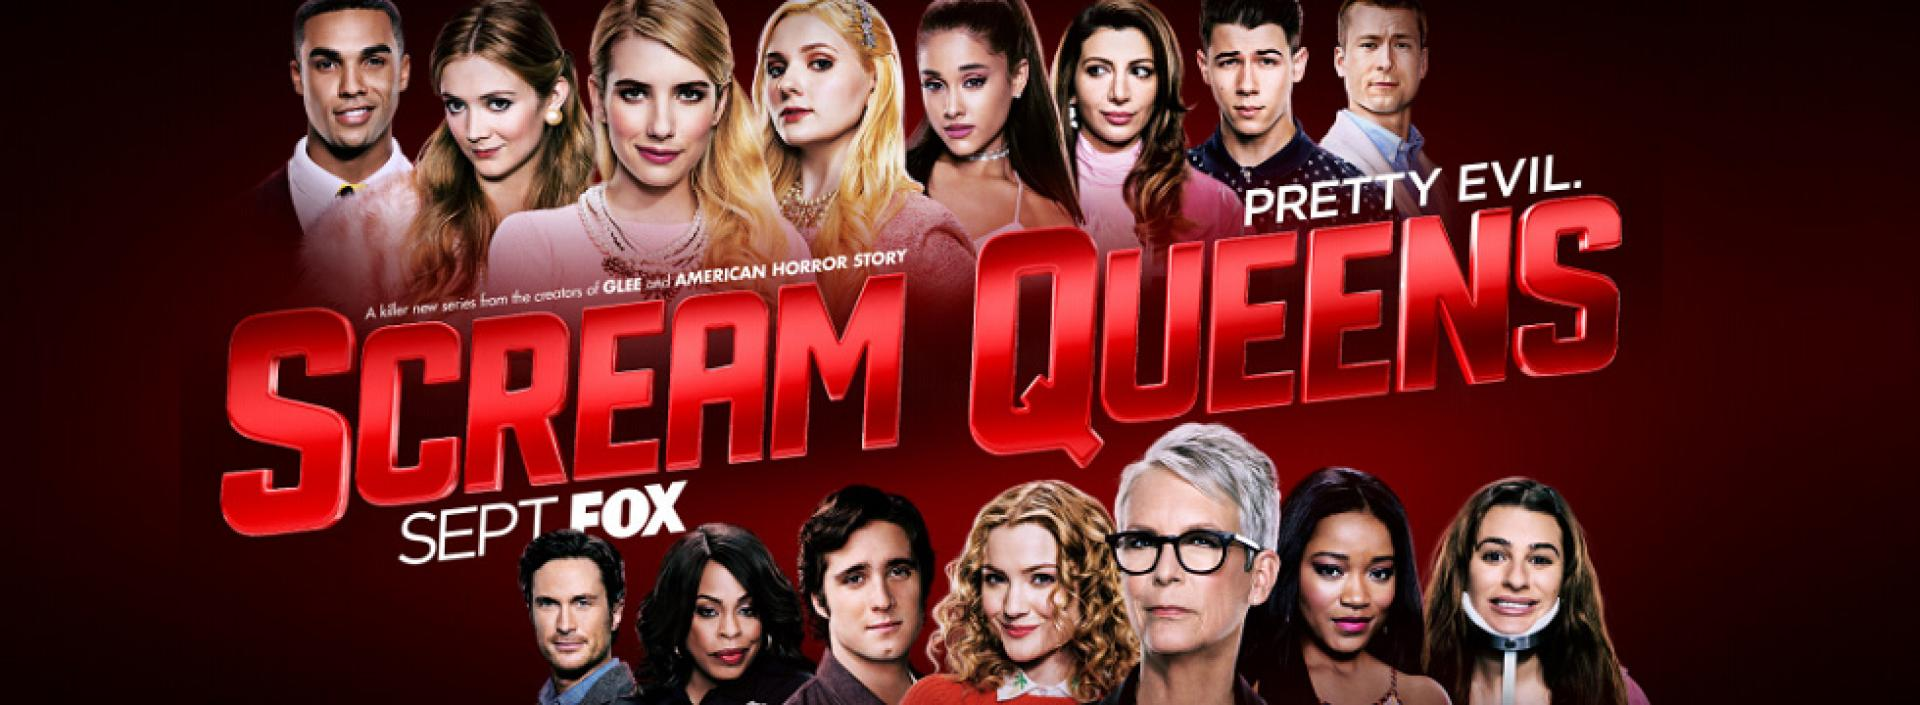 Scream Queens 1x07